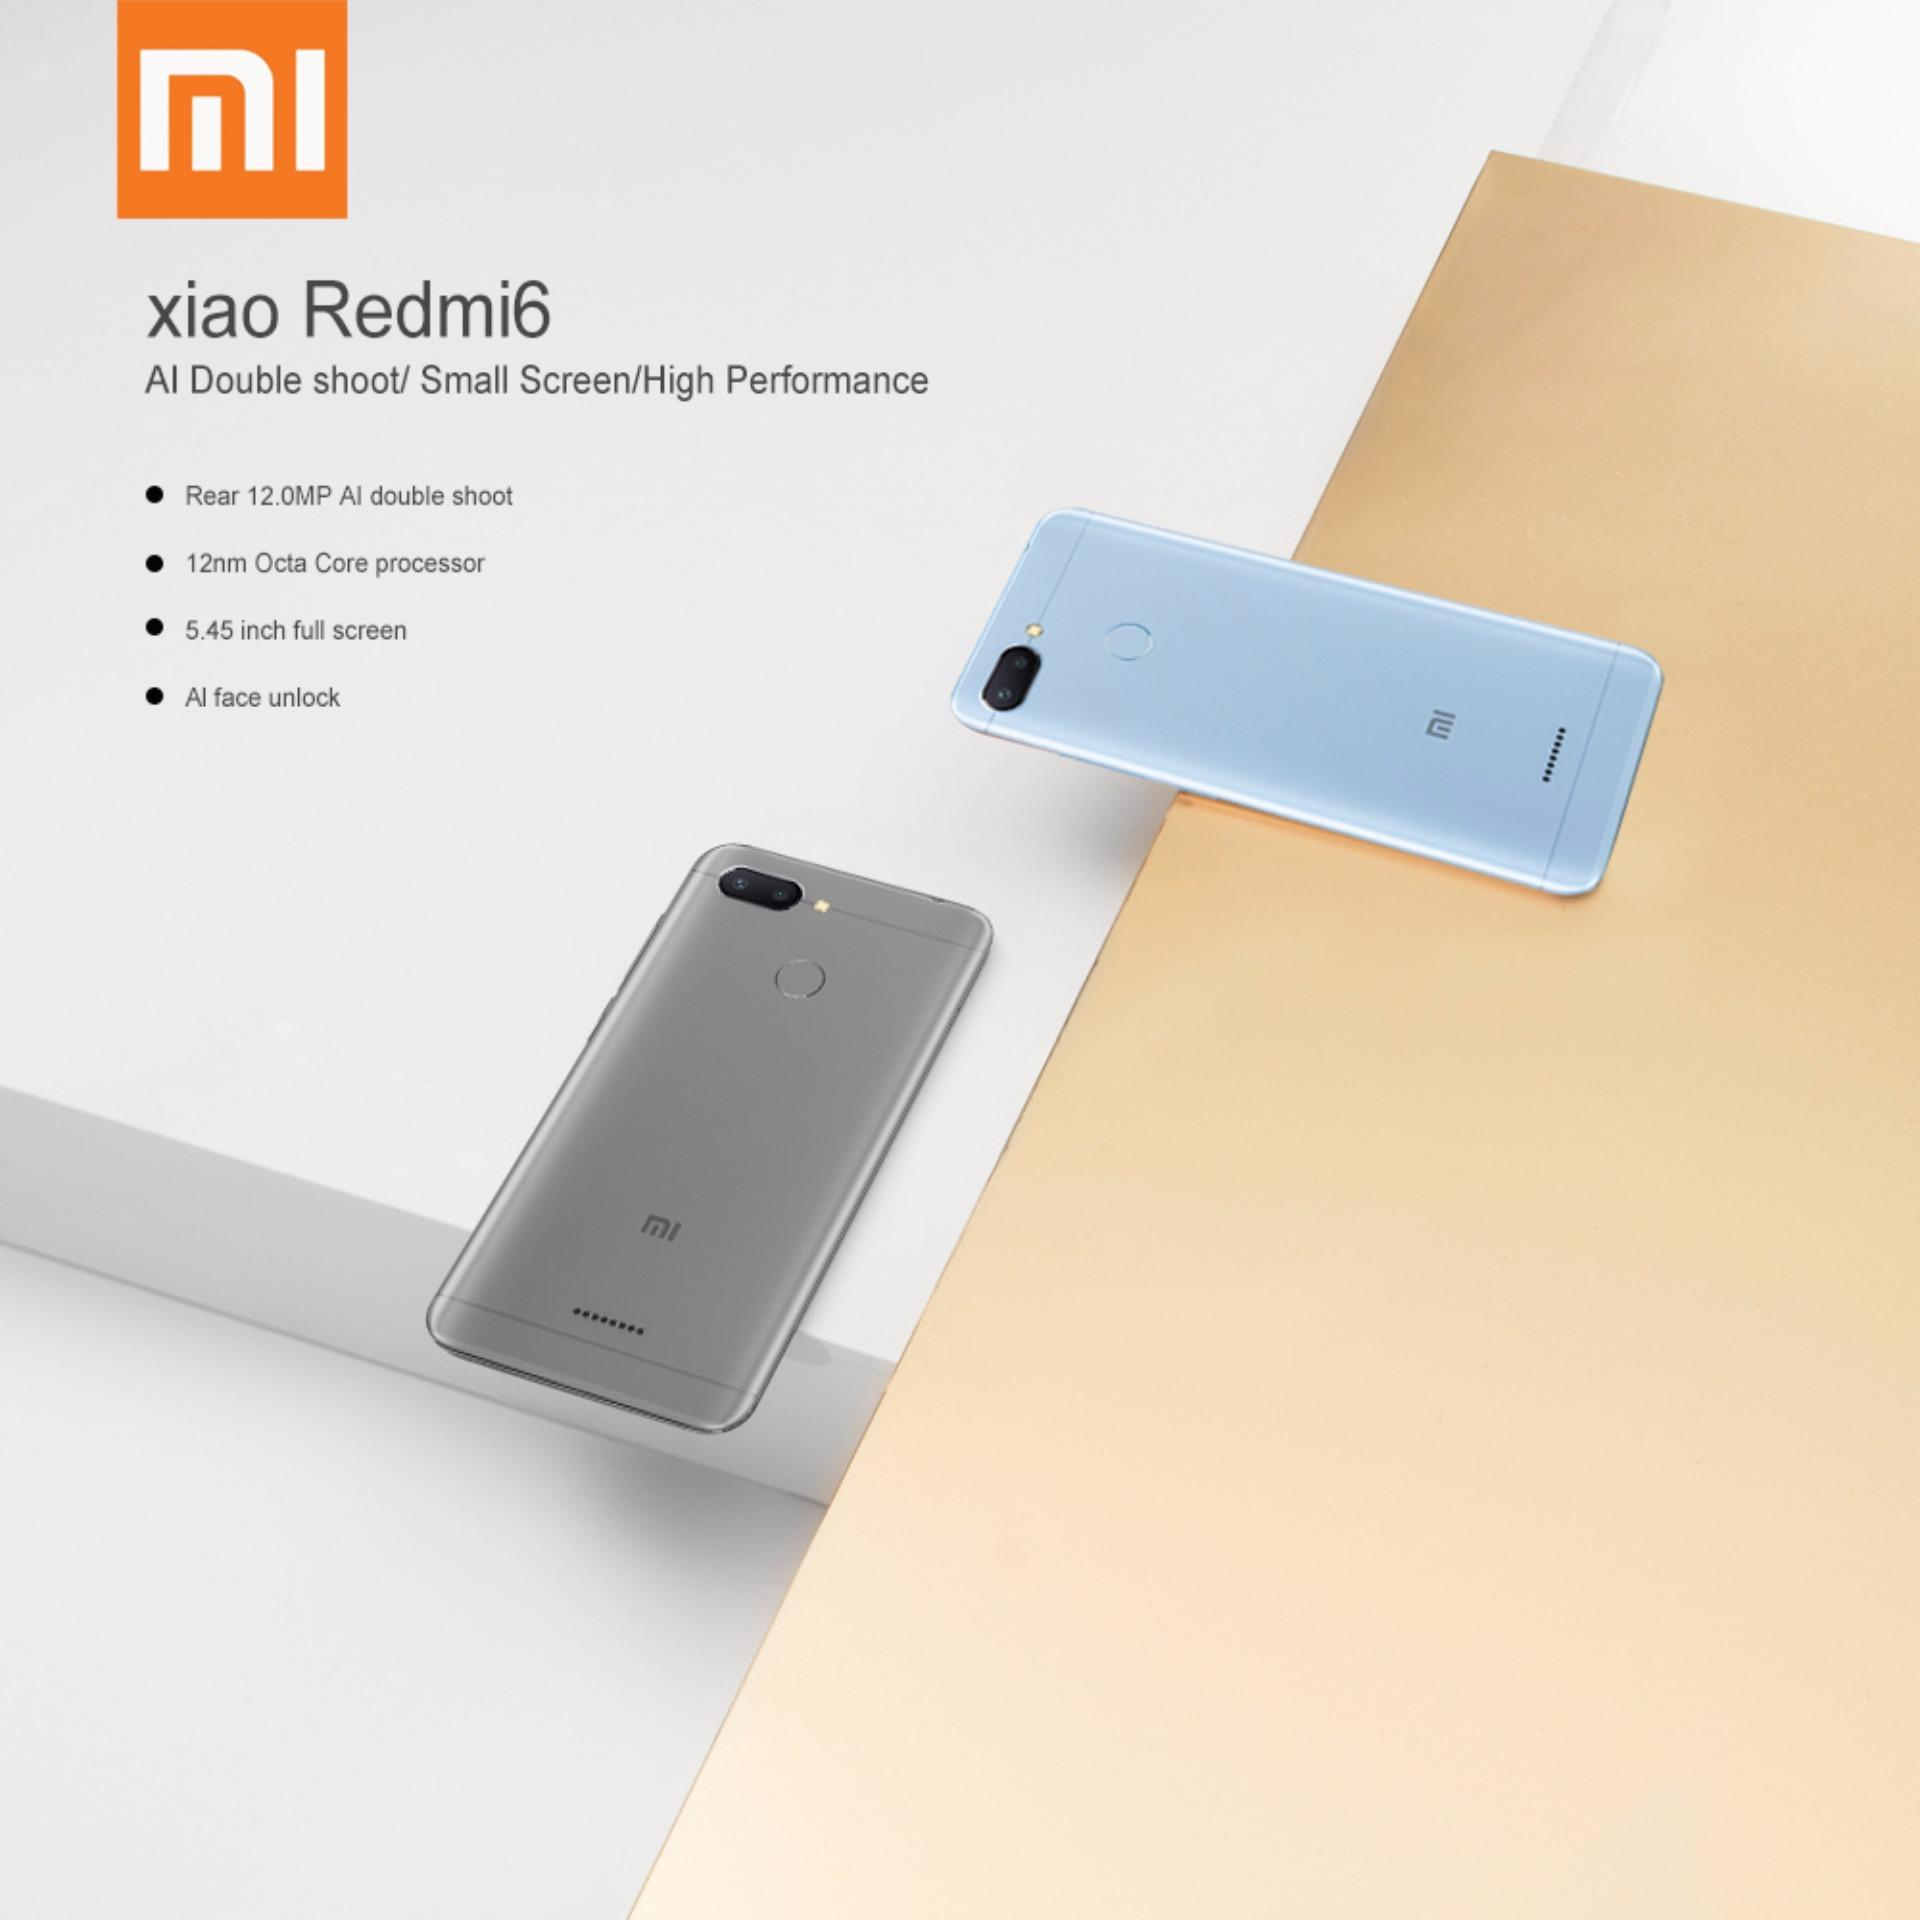 Buy Sell Cheapest Original Global Version Best Quality Product Xiaomi Redmi S2 Ram 3 Internal 32gb Rom 6 3gb 4g Smartphone 545 Inch Android 81